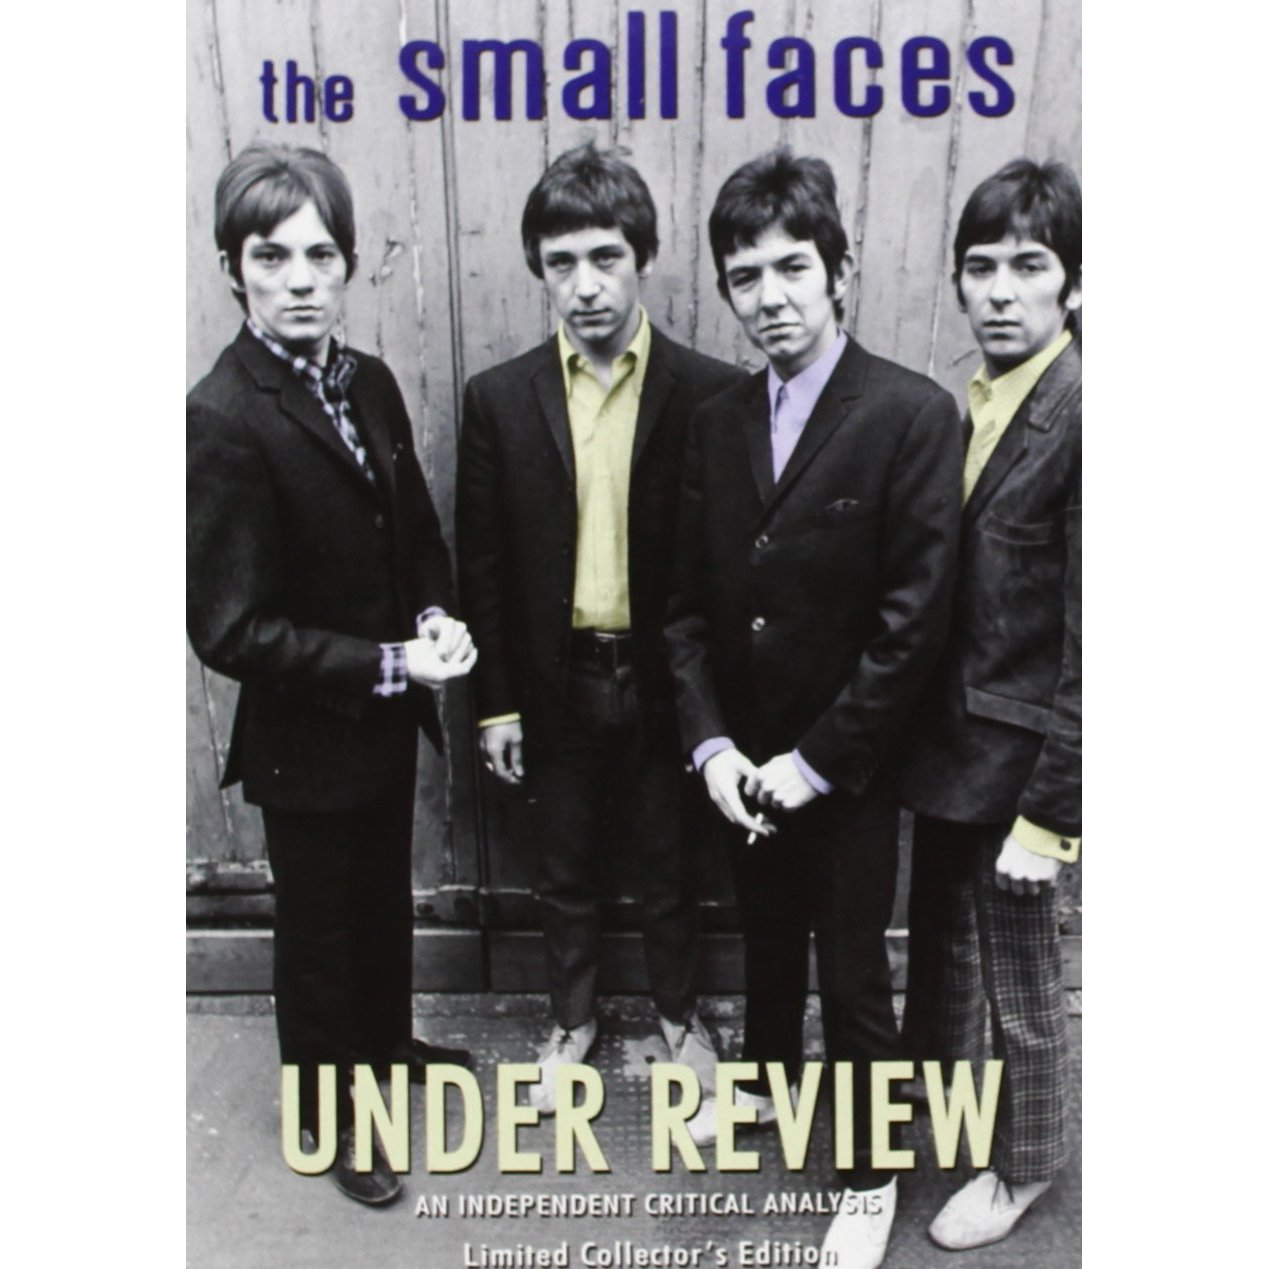 the_small_faces_UNDER_REVIEW.jpg